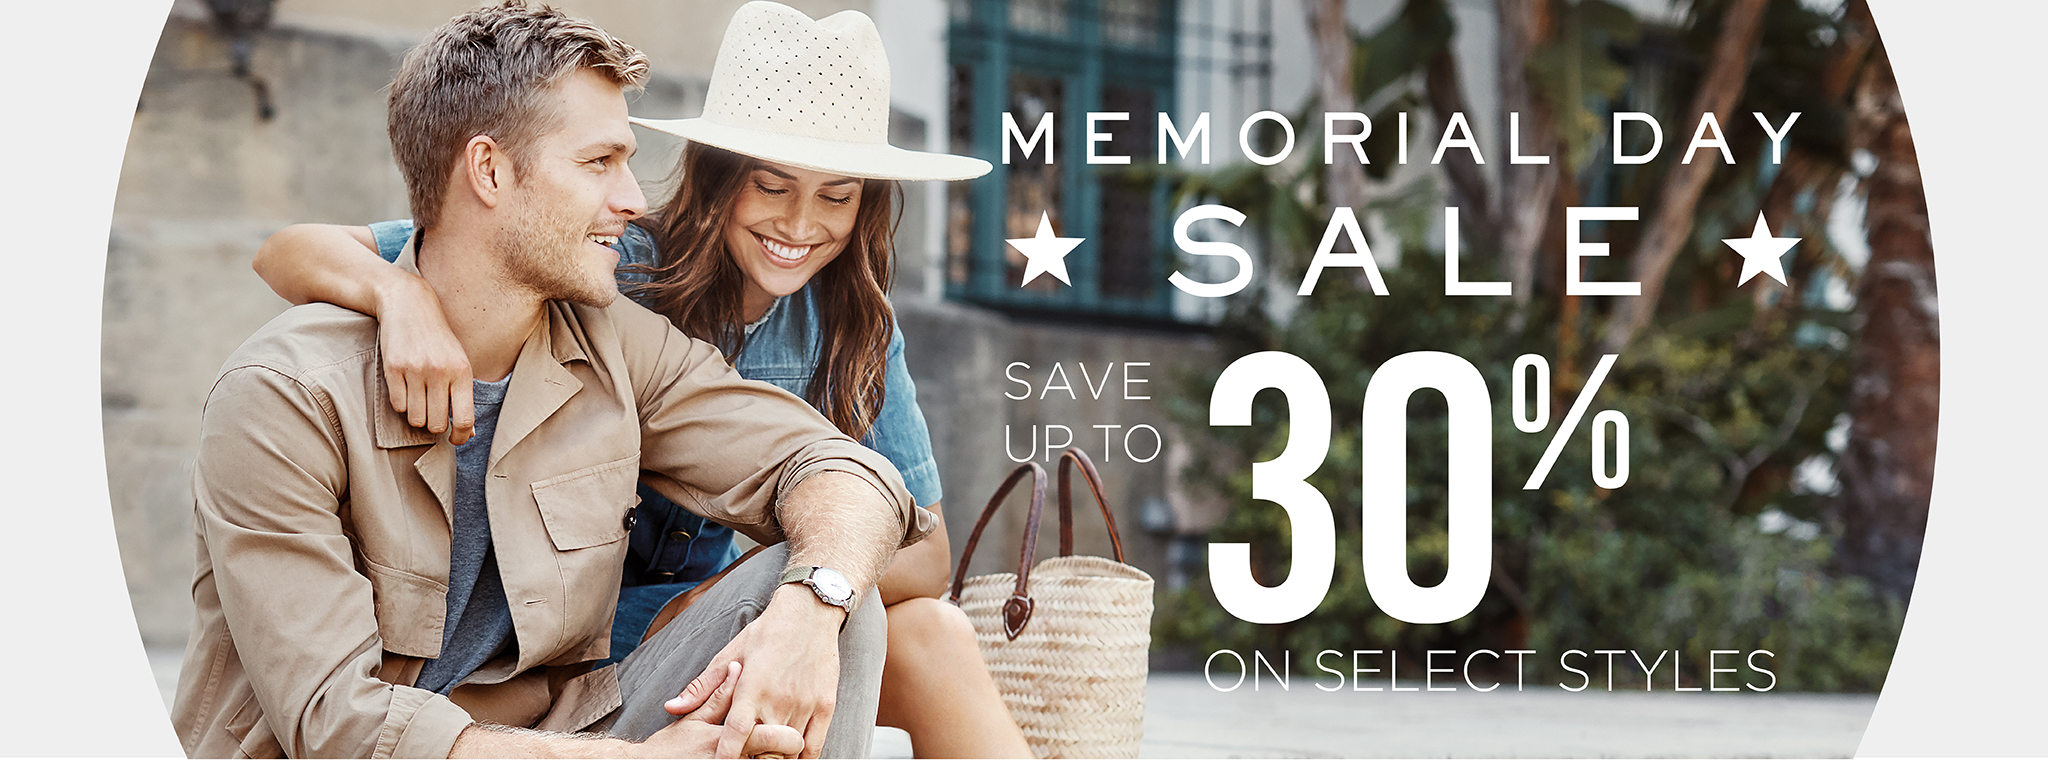 Save Now on Select Women's and Men's Styles